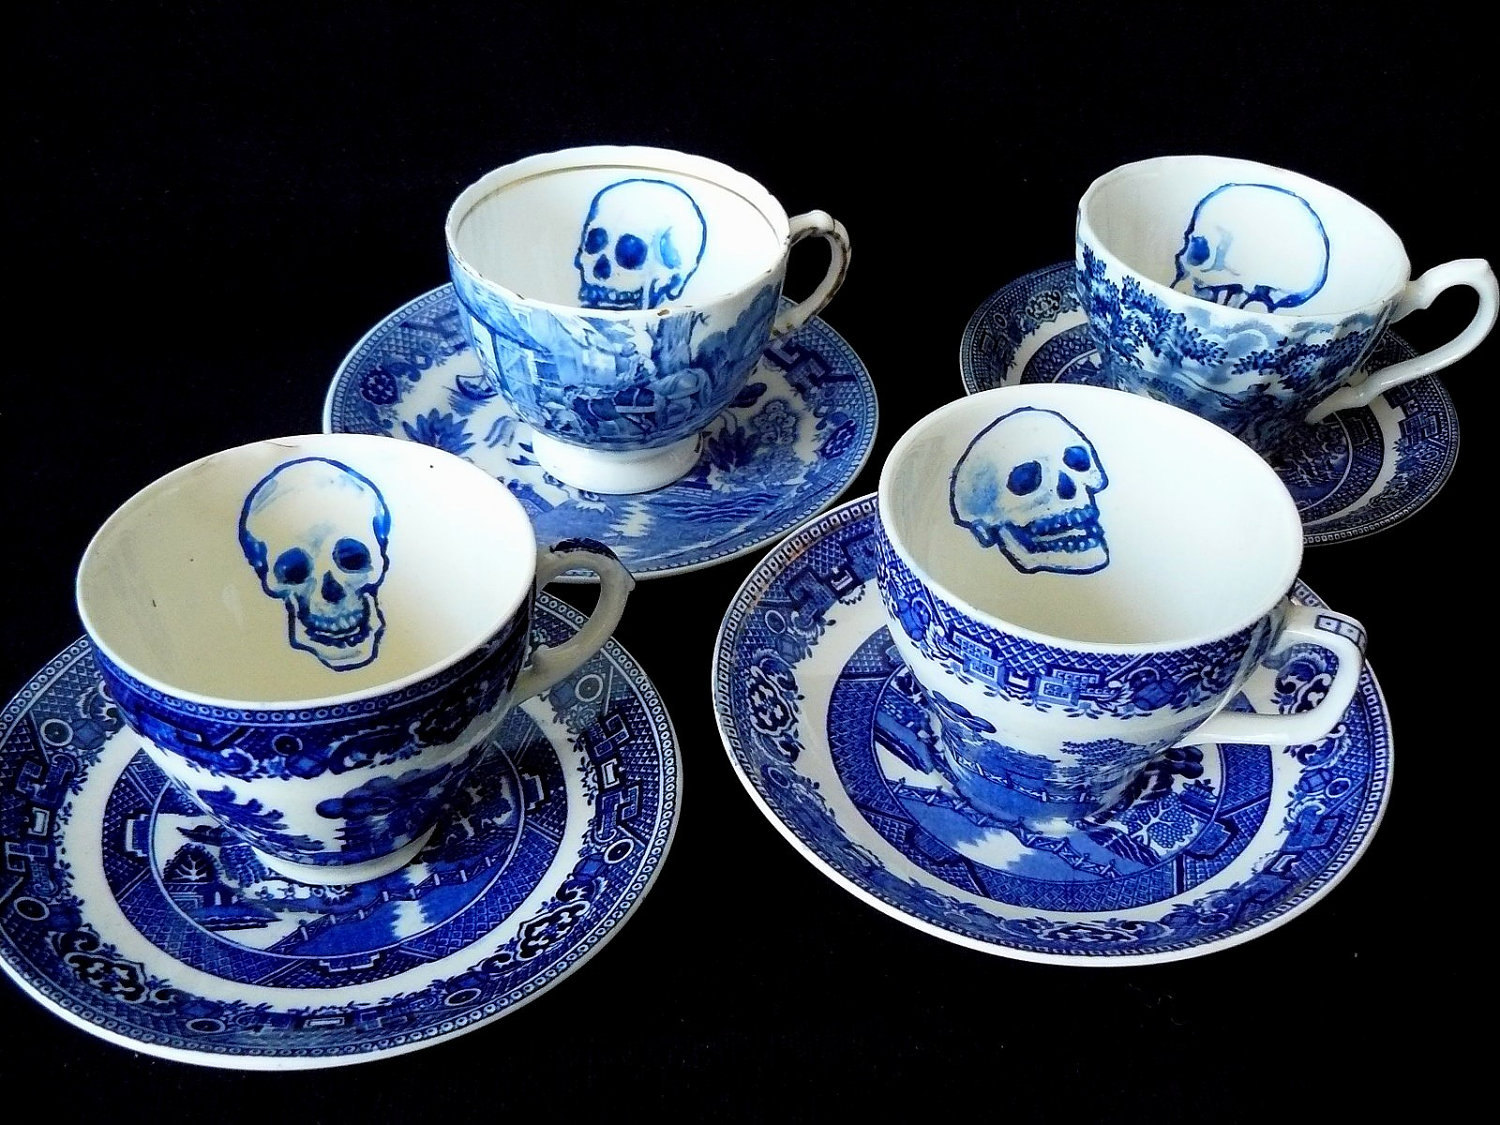 Sale Skulls Blue Willow Teaset